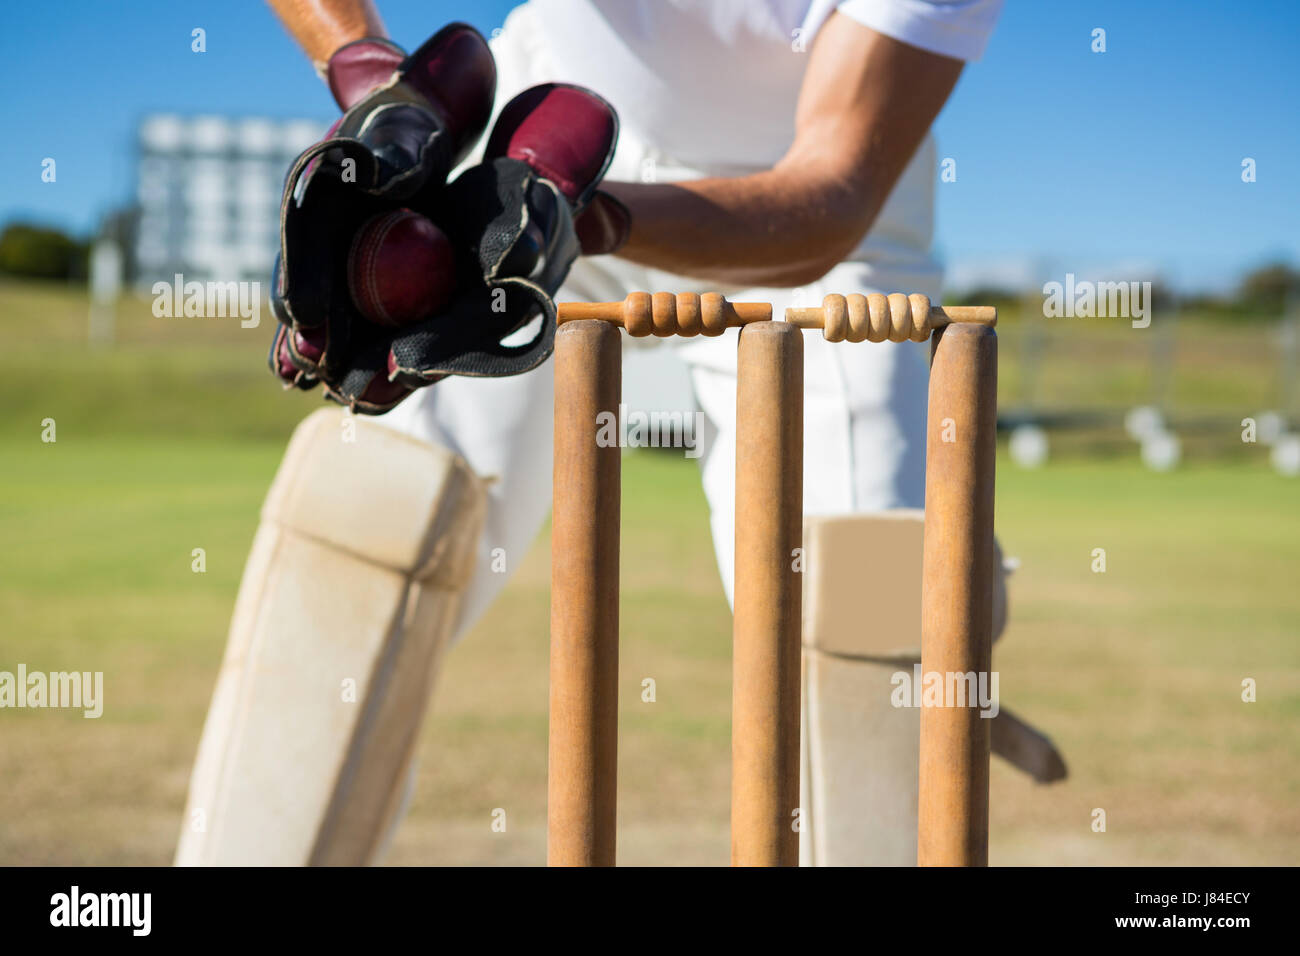 Cropped image of wicket keeper standing by stumps during match on sunny day - Stock Image